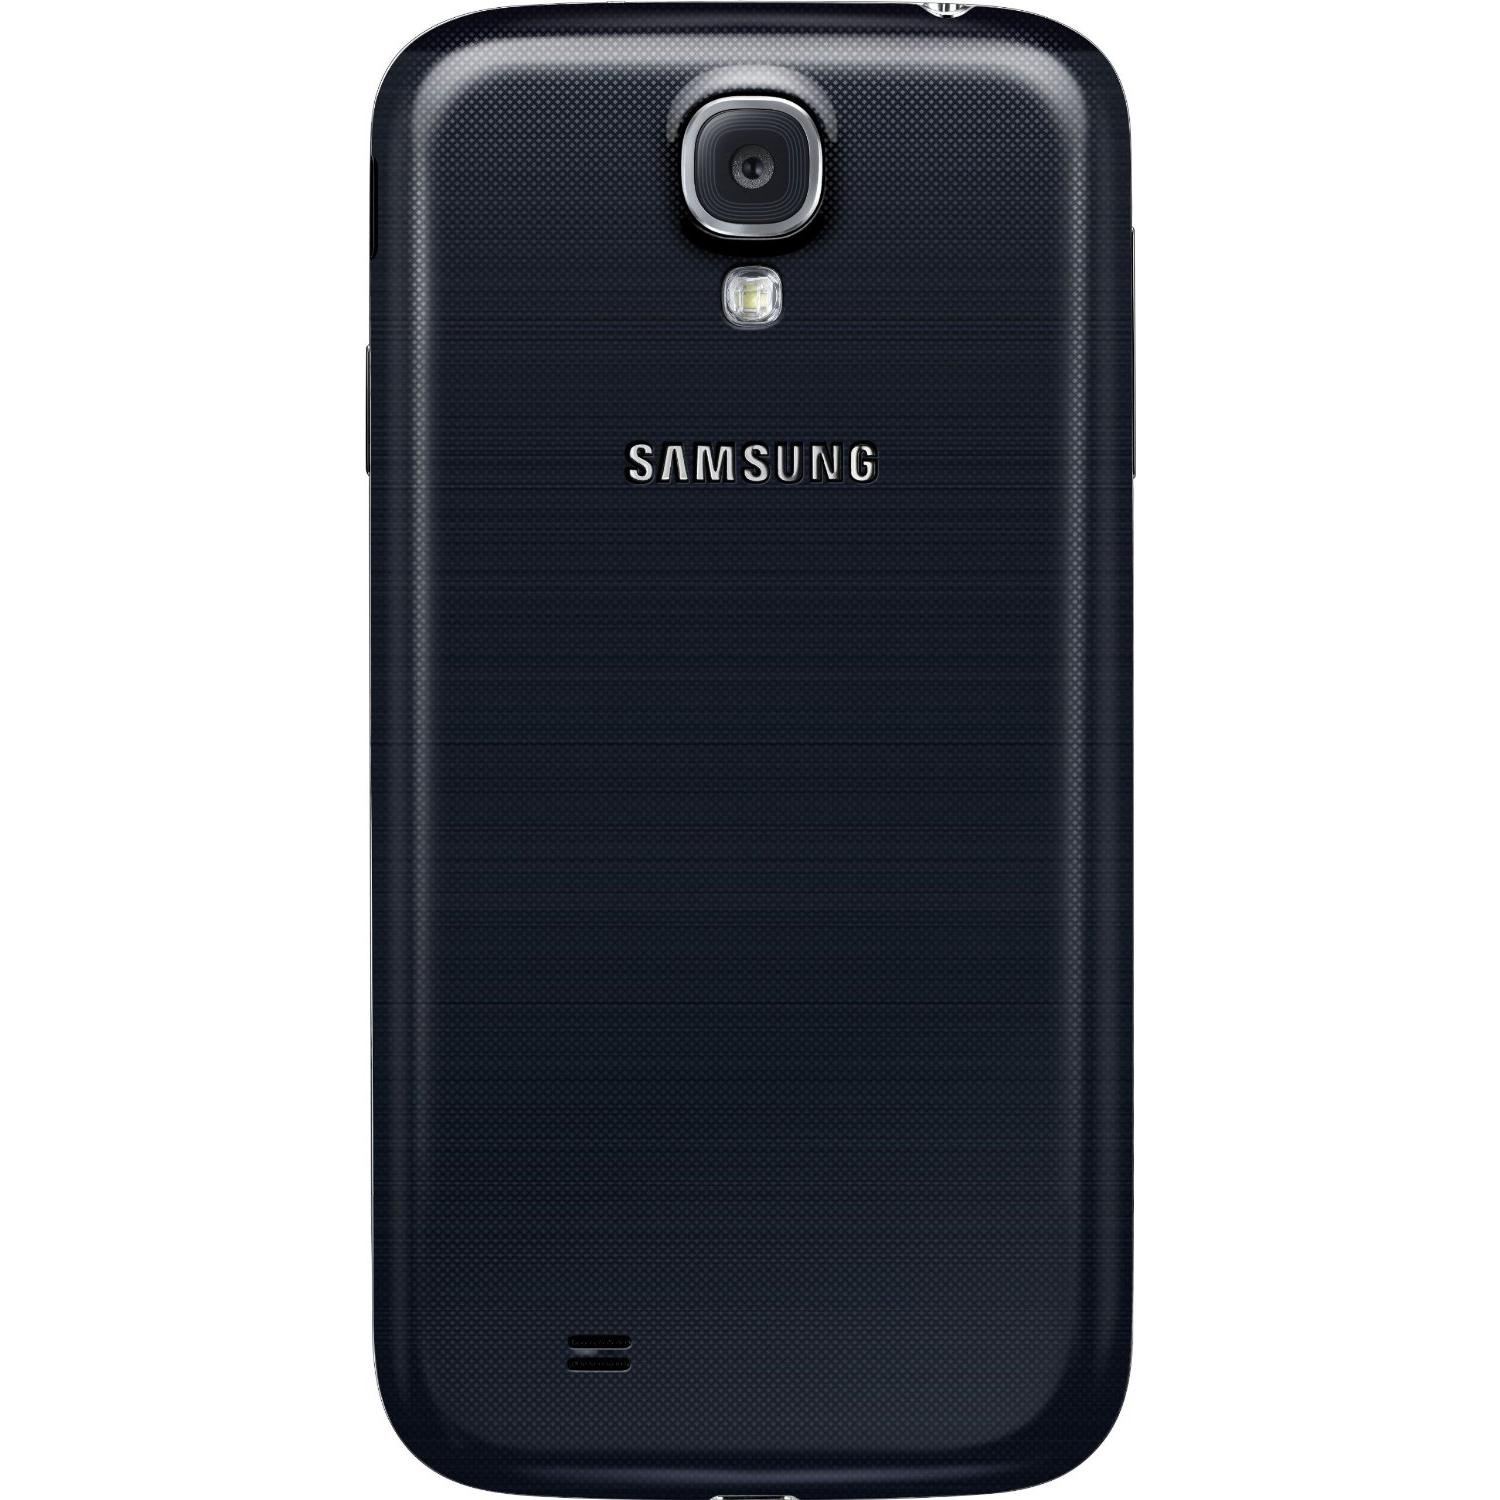 Samsung Galaxy S4 Advance 16 Gb i9506 - Negro - Libre